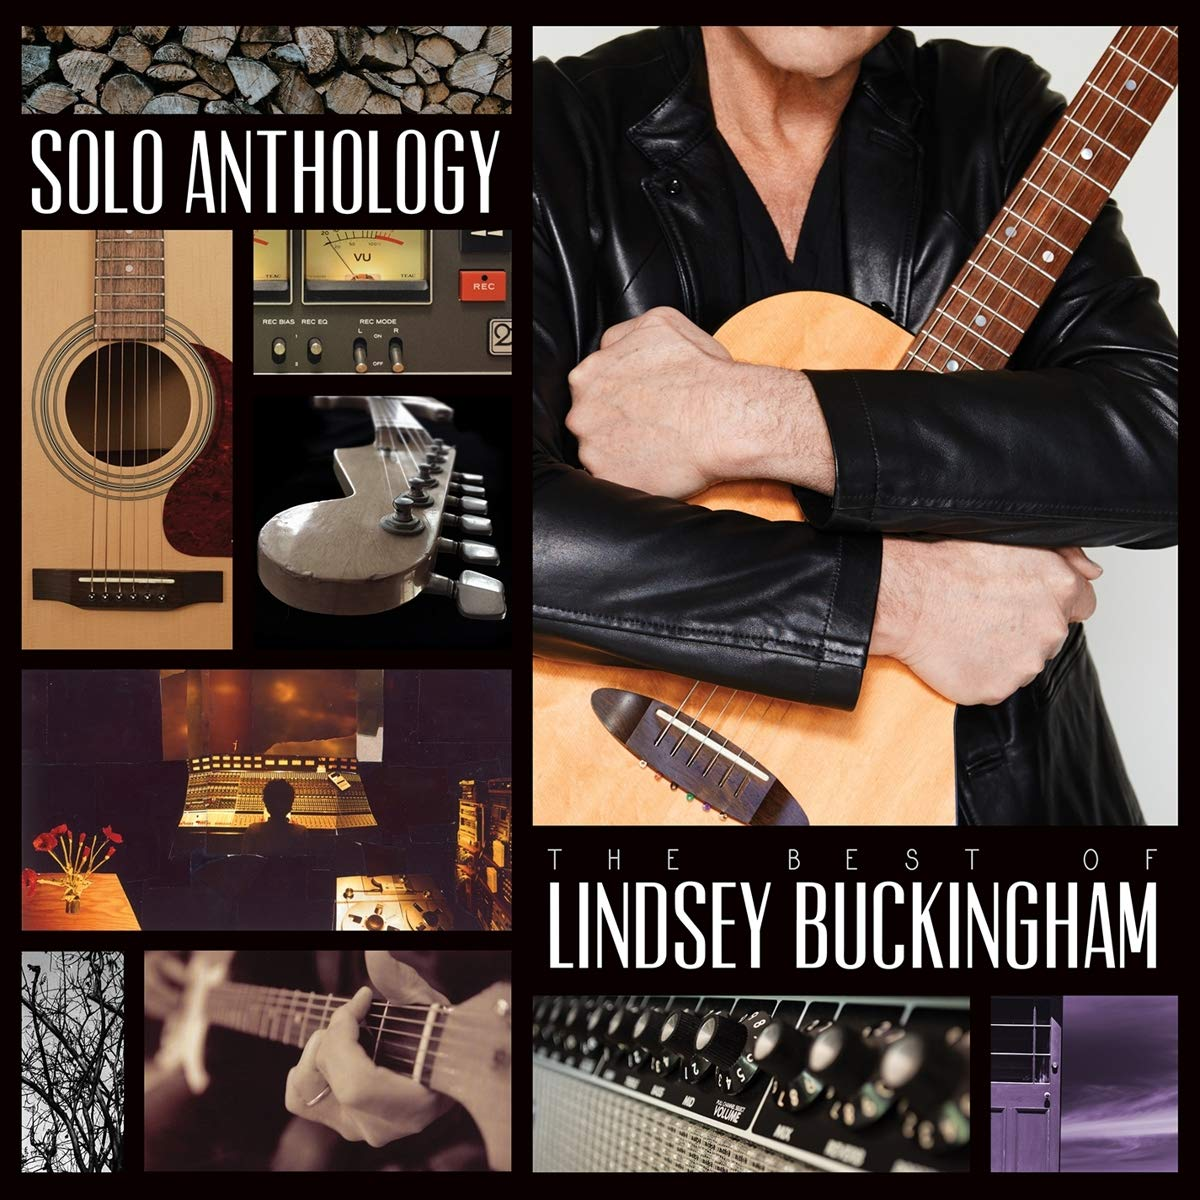 CD : Lindsey Buckingham - Solo Anthology: The Best Of Lindsey Buckingham (CD)